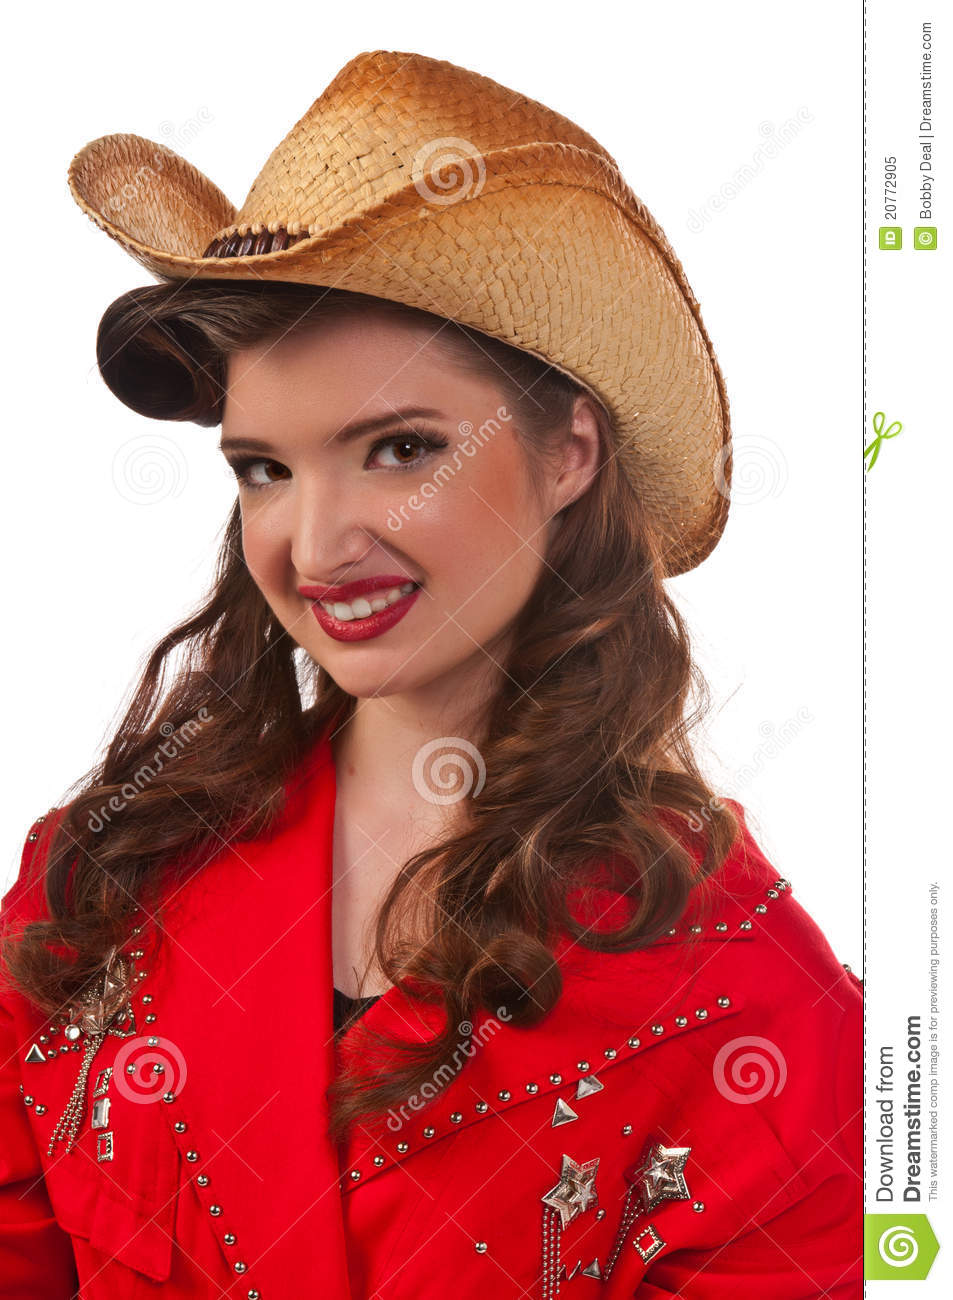 Pinup Cowgirl Royalty Free Stock Photo Image 20772905